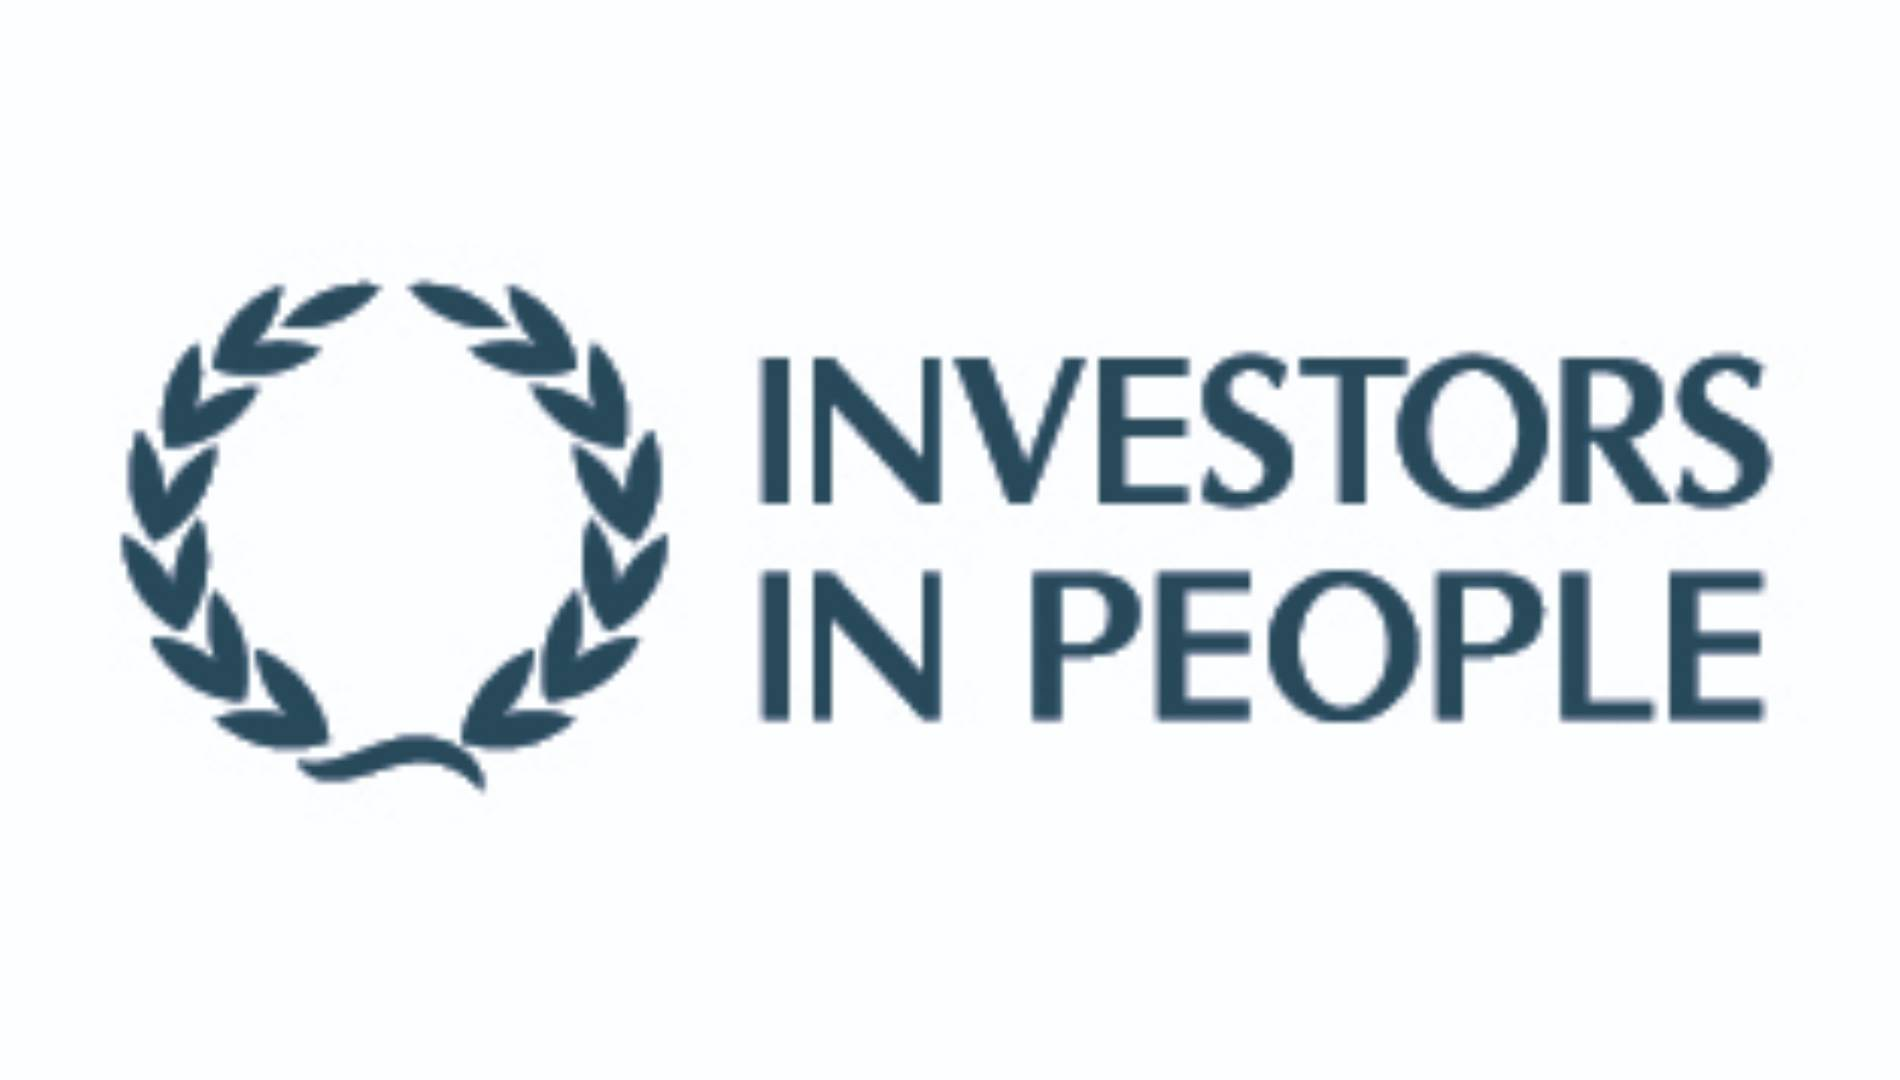 West Way Accredited as an Investor in People